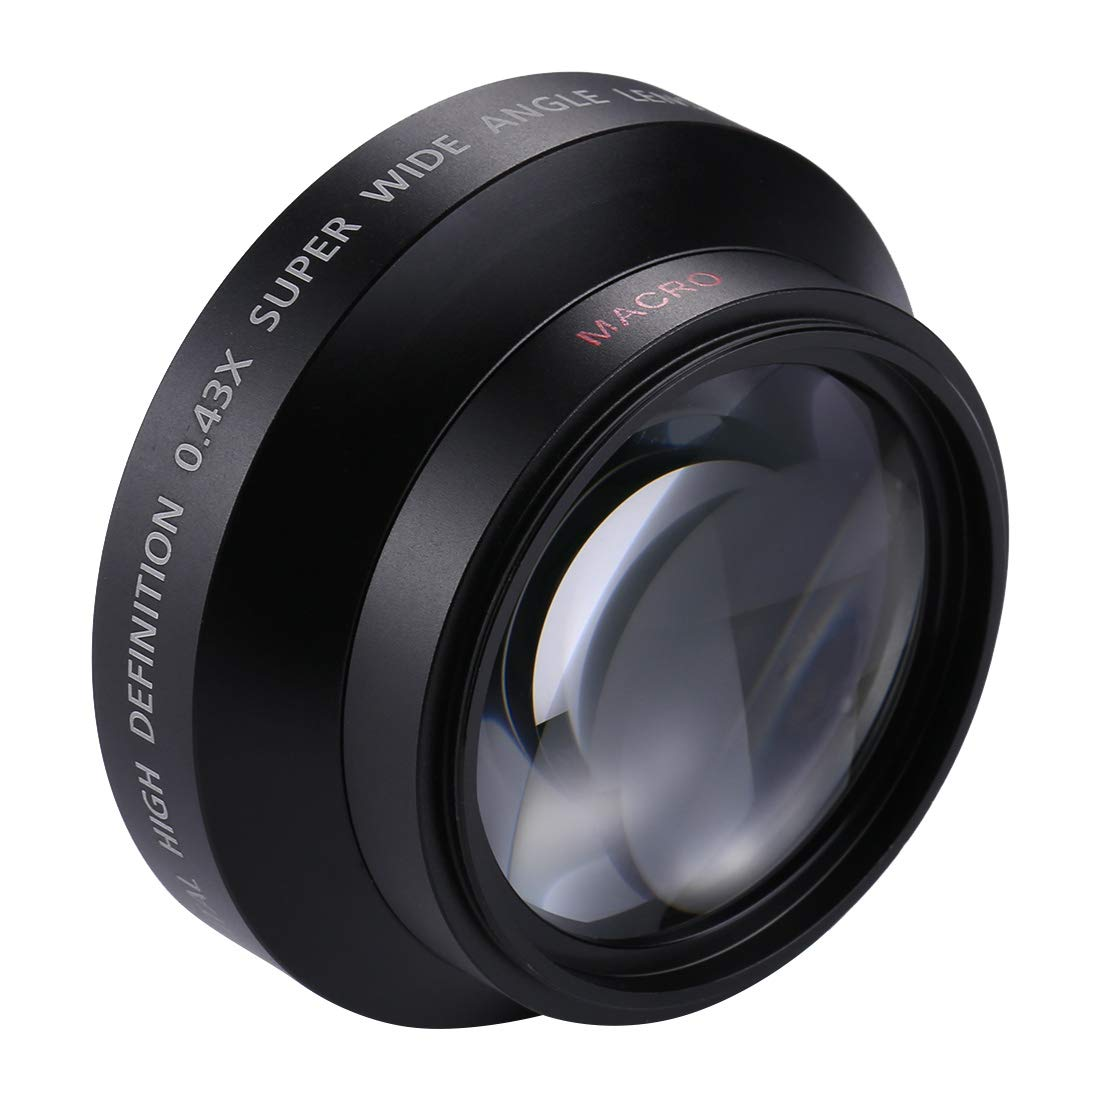 HyxppthiAAccessory Hyx 62mm 0.45X Super Wide Angle Lens with Macro Lens Auxiliary Lens by HyxppthiAAccessory